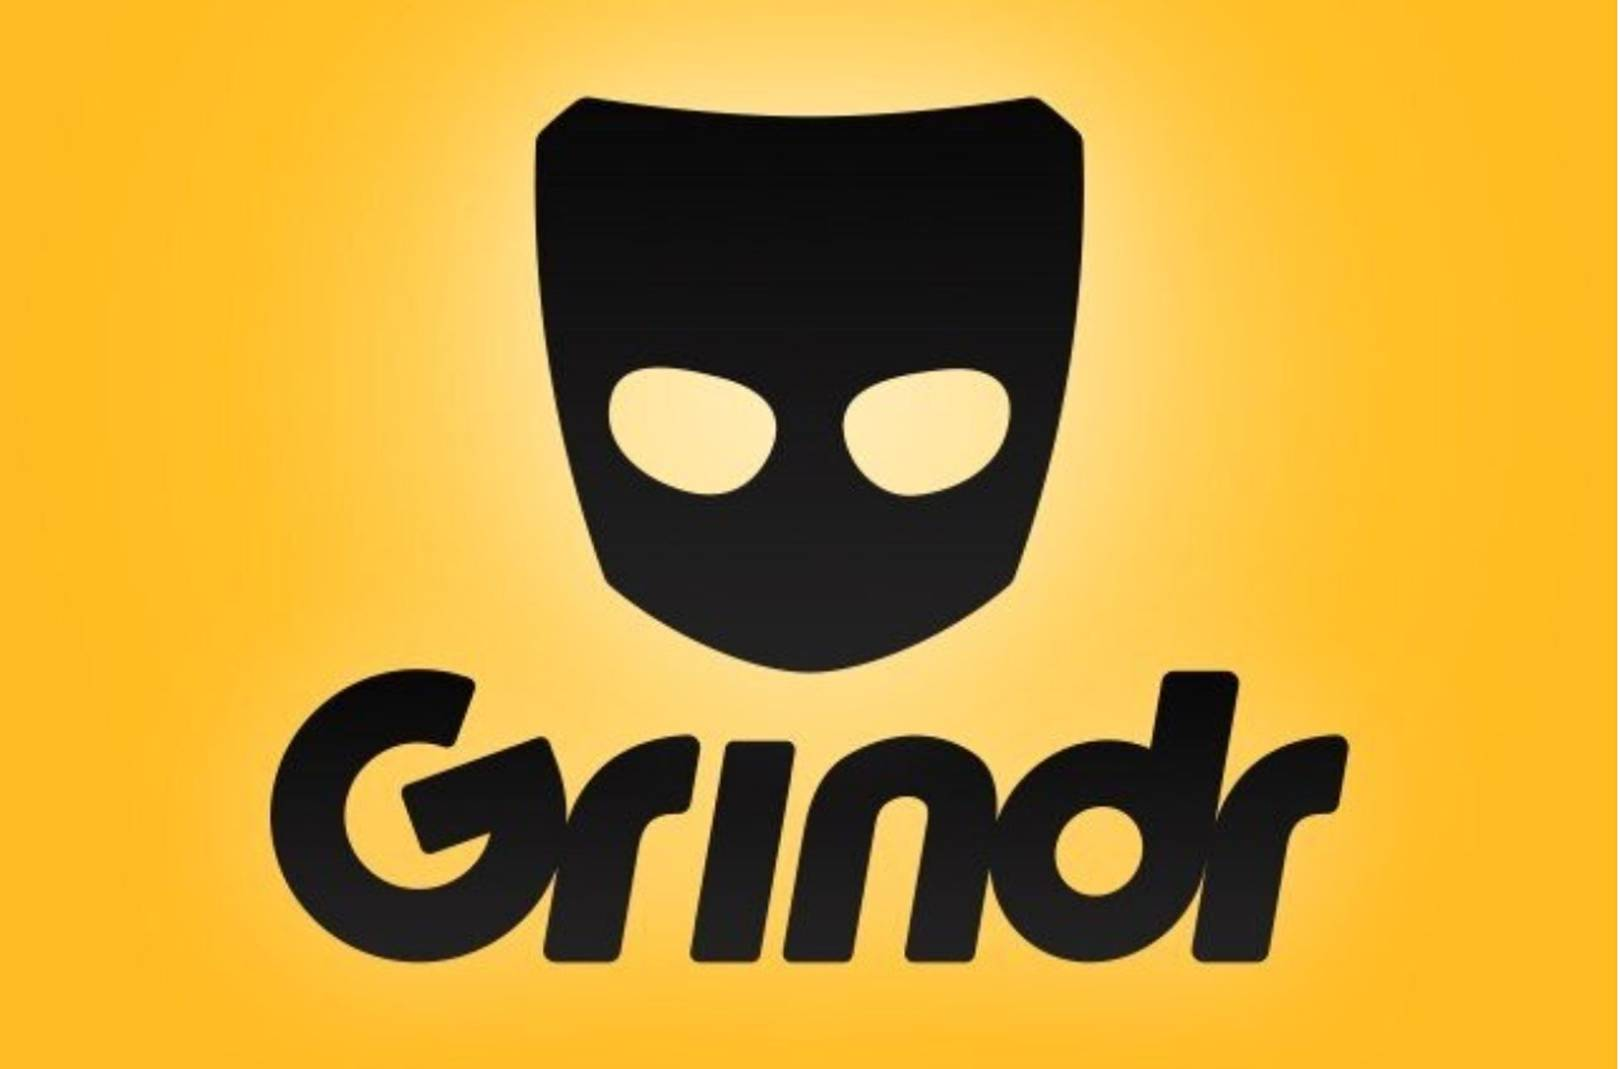 Grindr tips and tricks